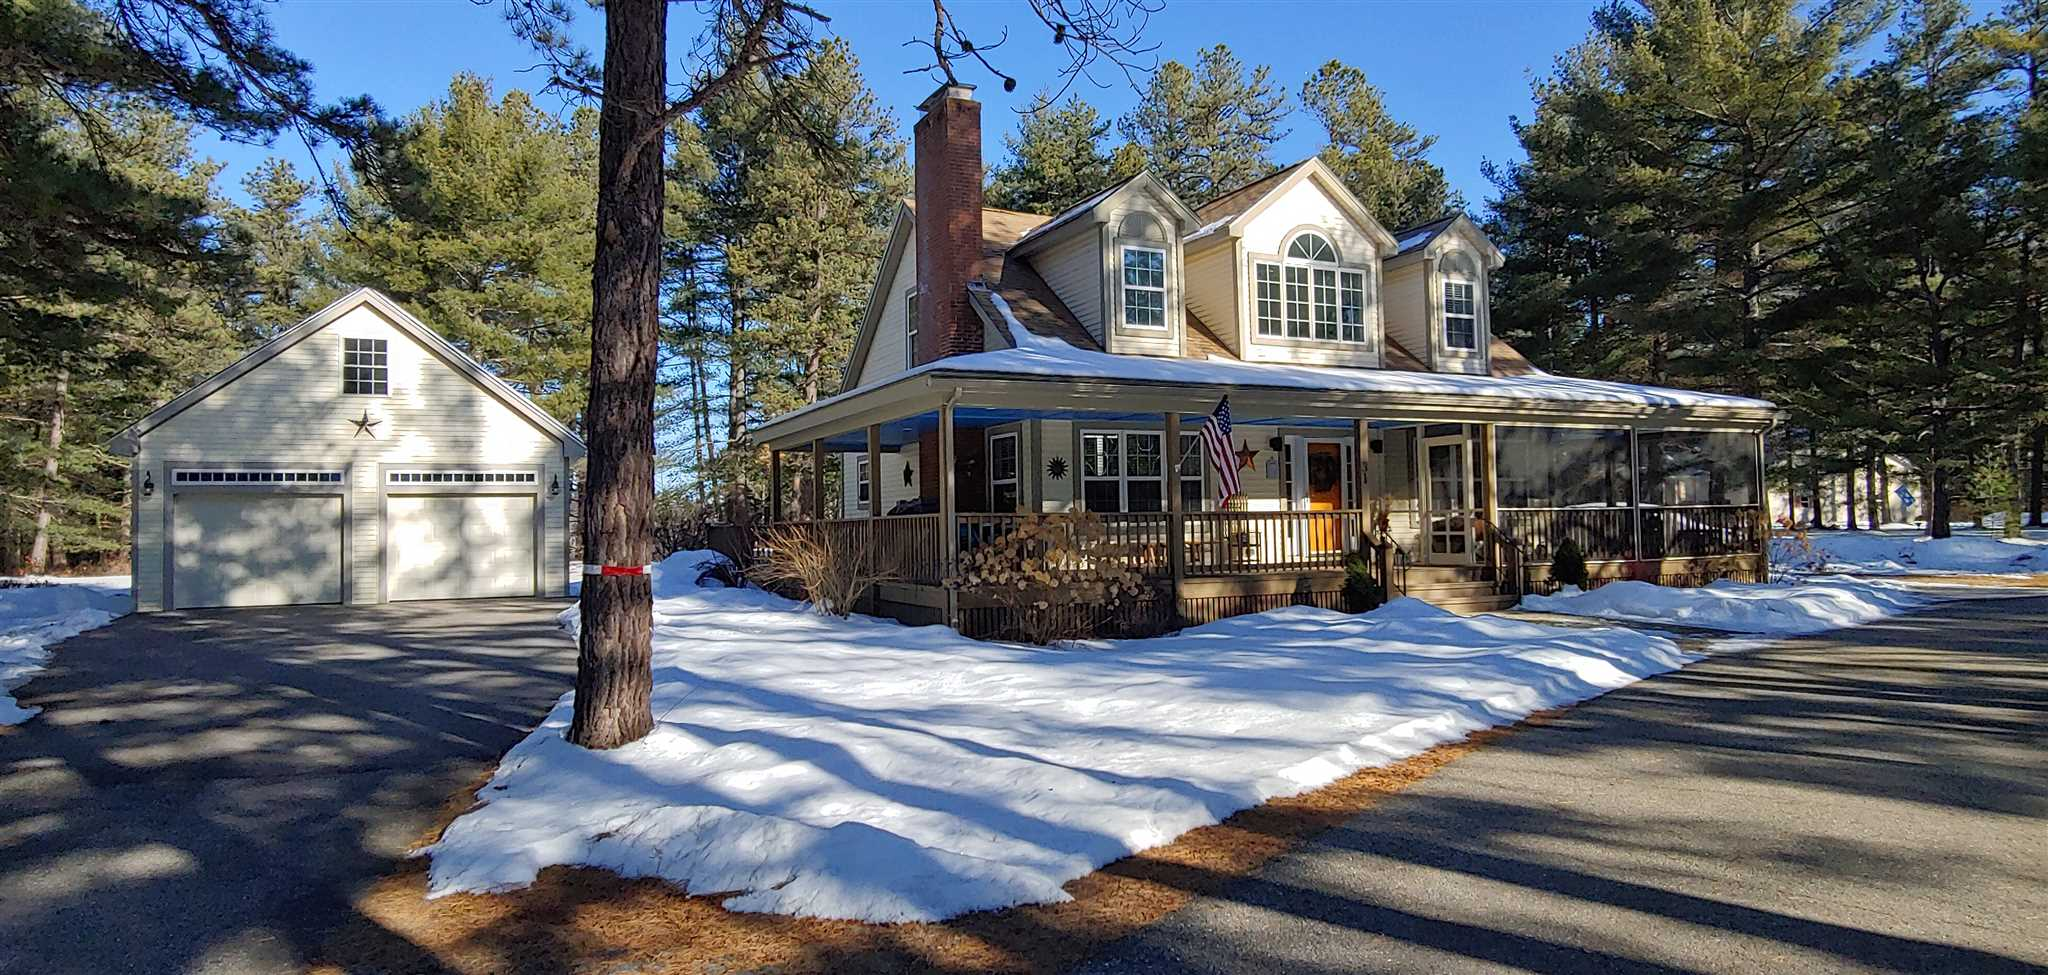 VILLAGE OF OSSIPEE VILLAGE NH IN TOWN OF OSSIPEE NH  Home for sale $294,900